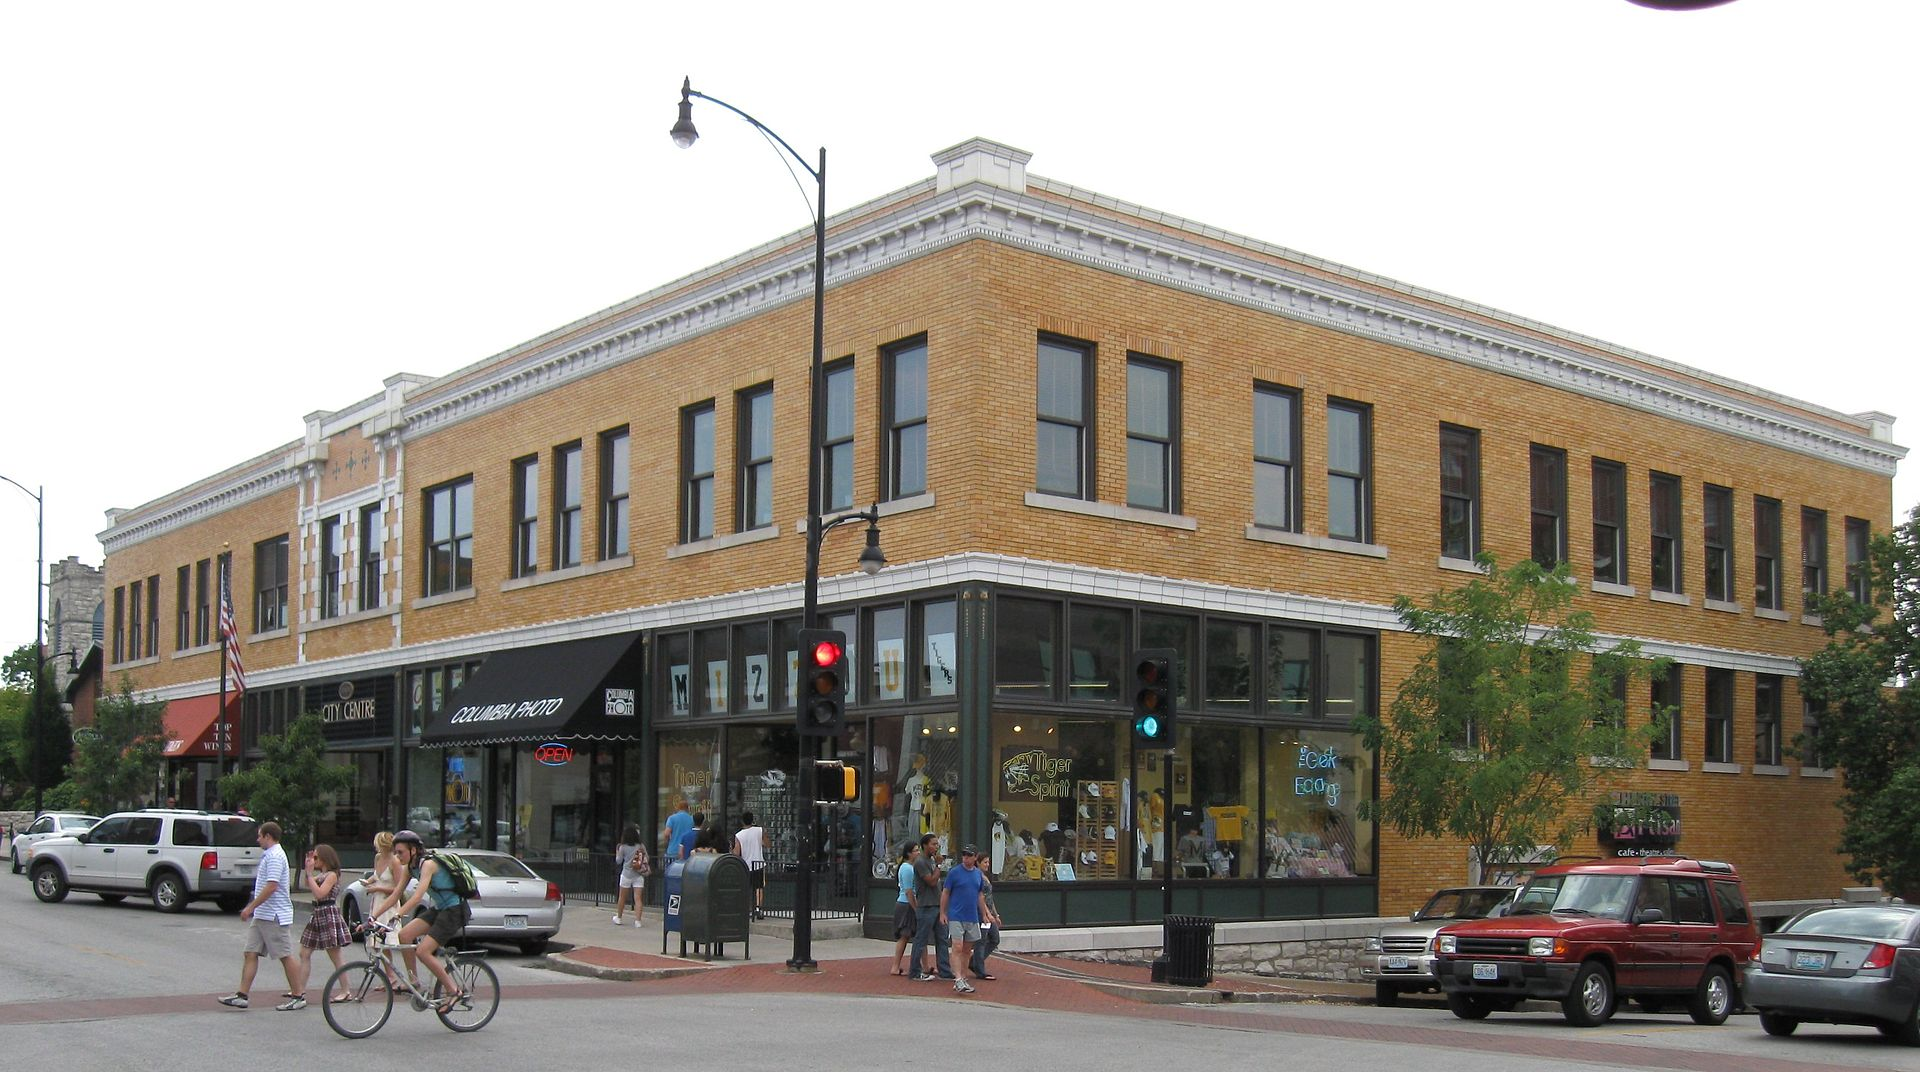 2009 Photo of the historic Virginia Building in Columbia, MO